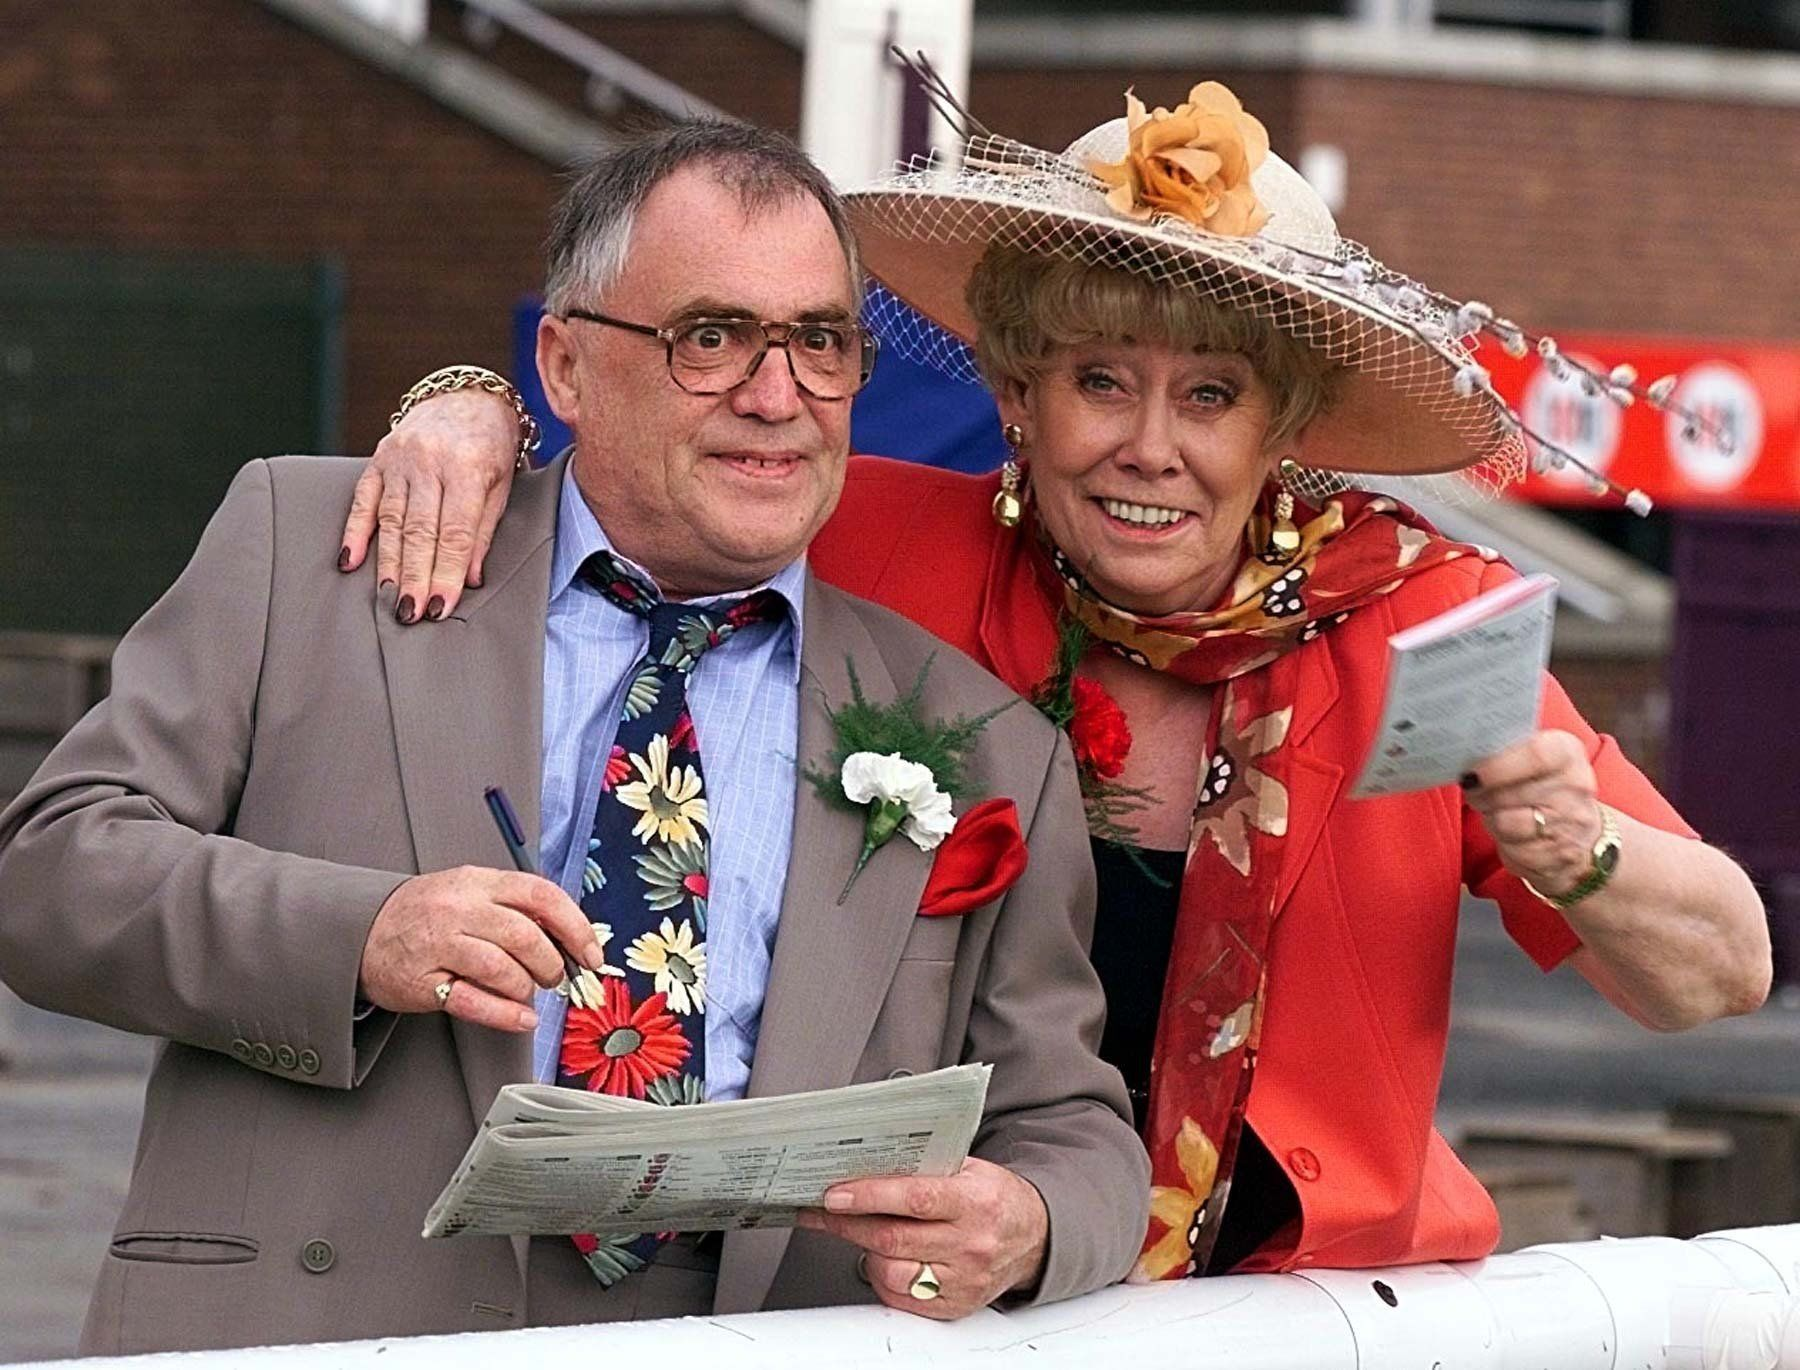 Jack and Vera's relationship gave viewers plenty of laughs and more than a few emotional moments